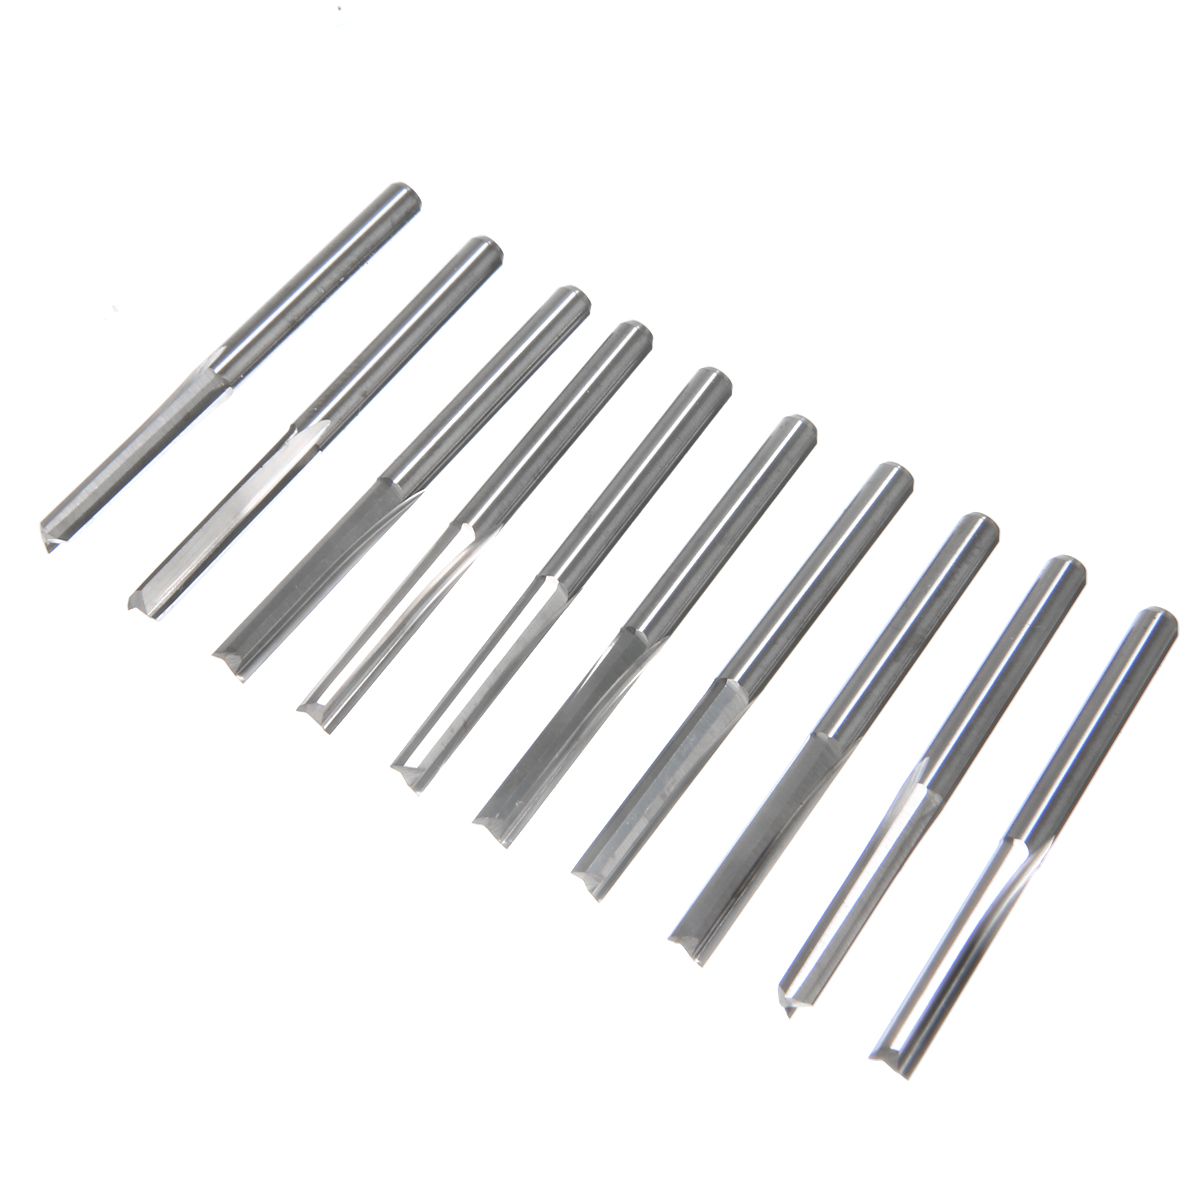 10pcs 2 Flute Straight Slot Milling Cutter Tungsten Steel CNC Router Bits  17mm For Wood MDF PVC Cutting Tools